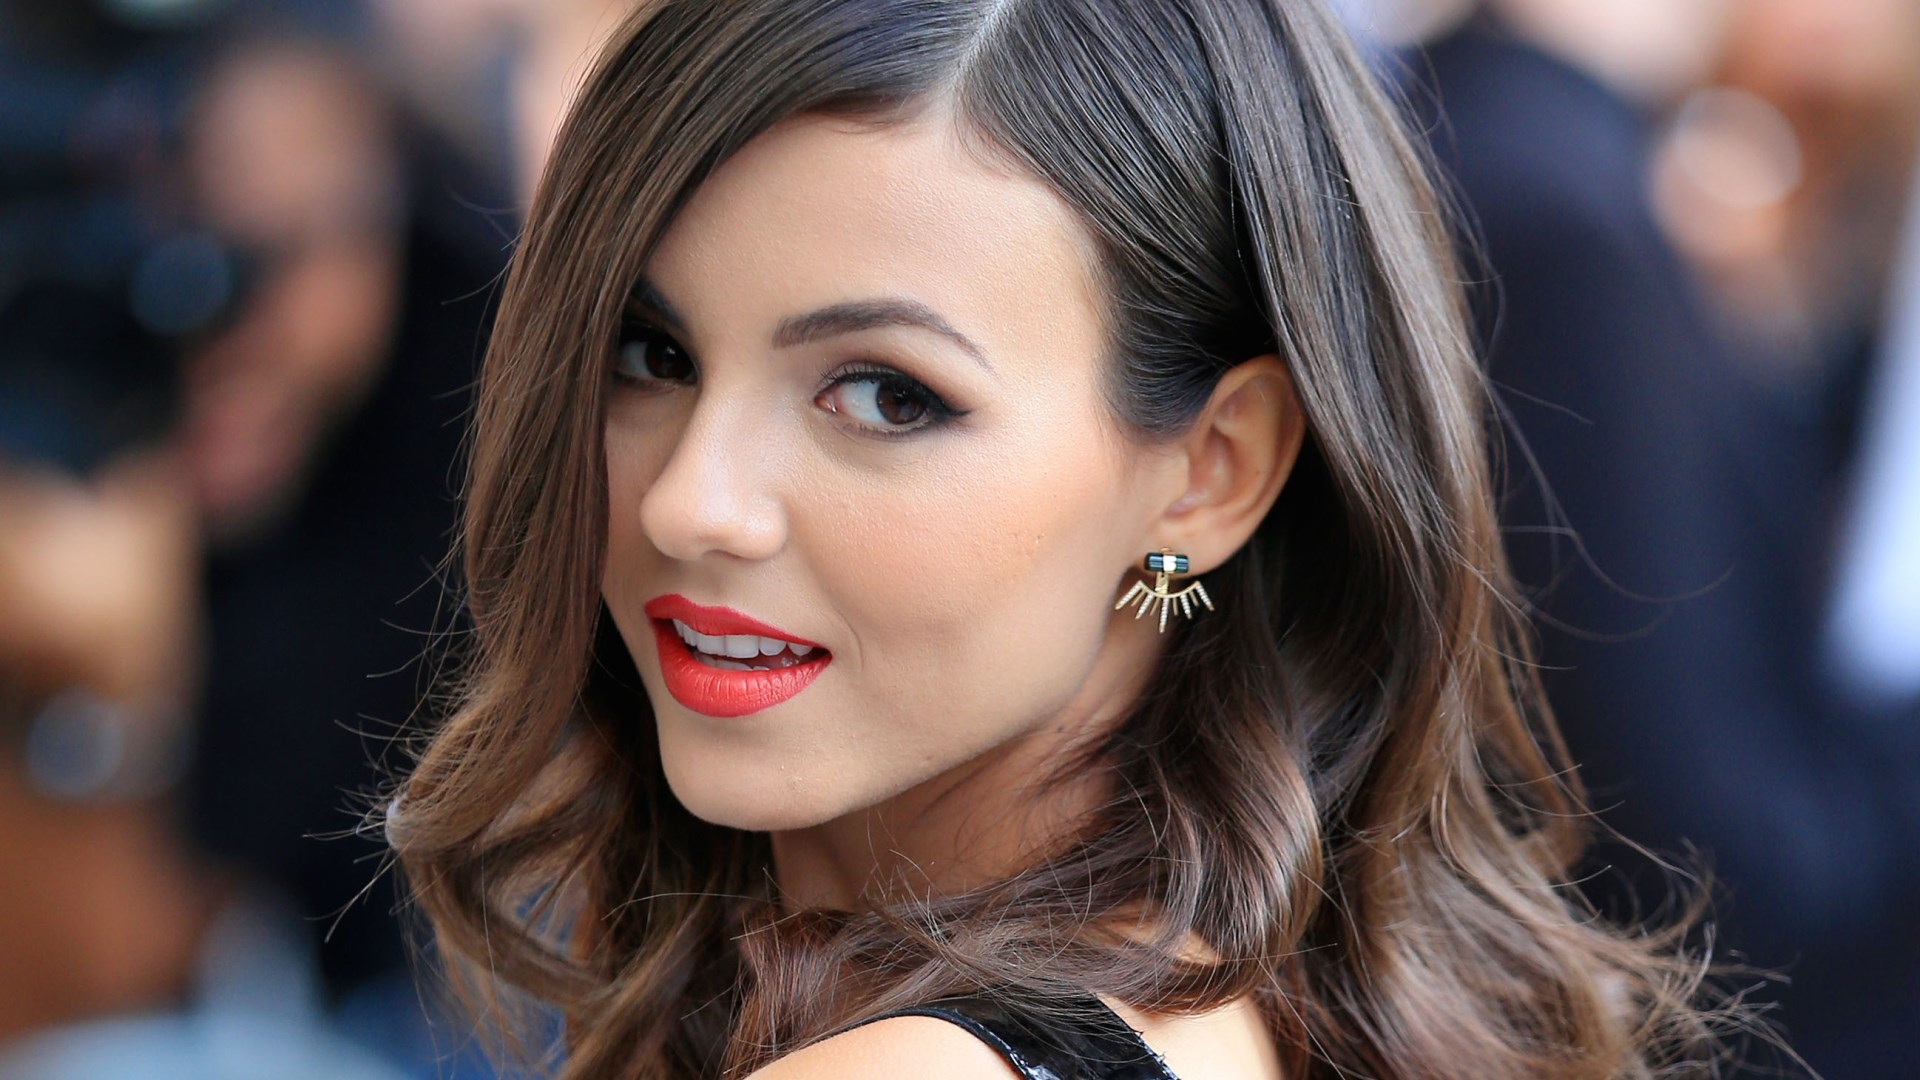 Victoria Justice Gorgeous HD Celebrities 4k Wallpapers Images